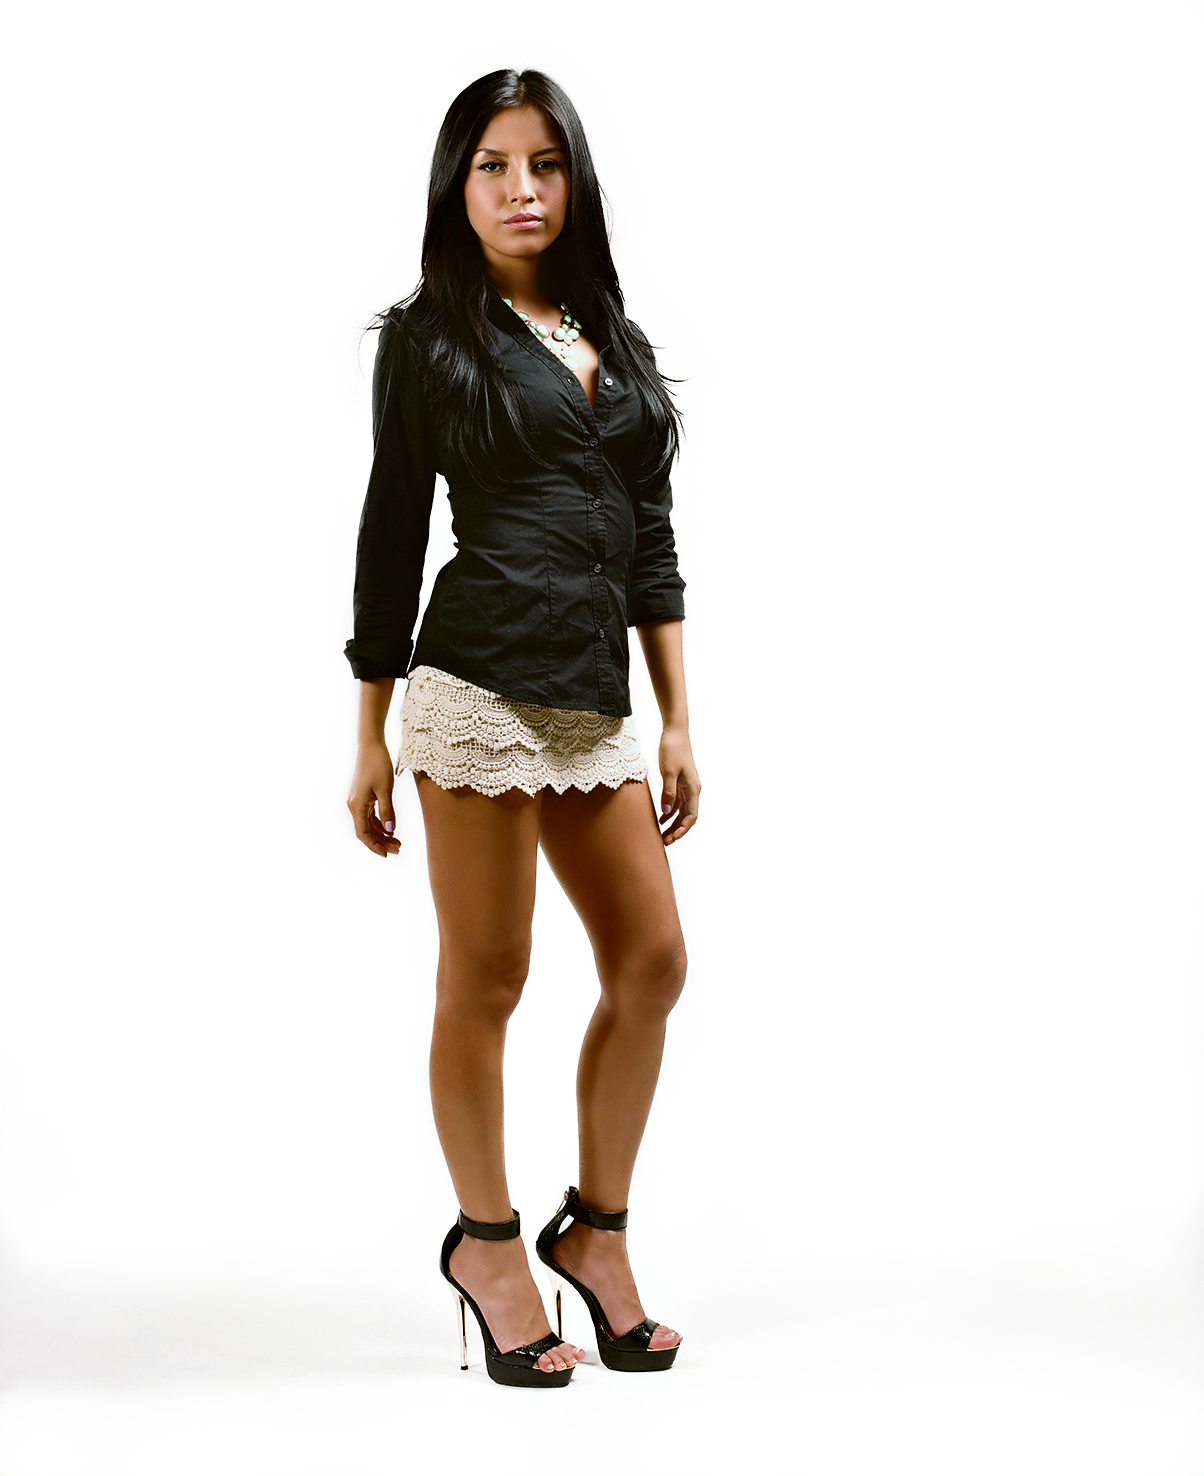 Full body studio portrait of Lissette with her arms at her waist